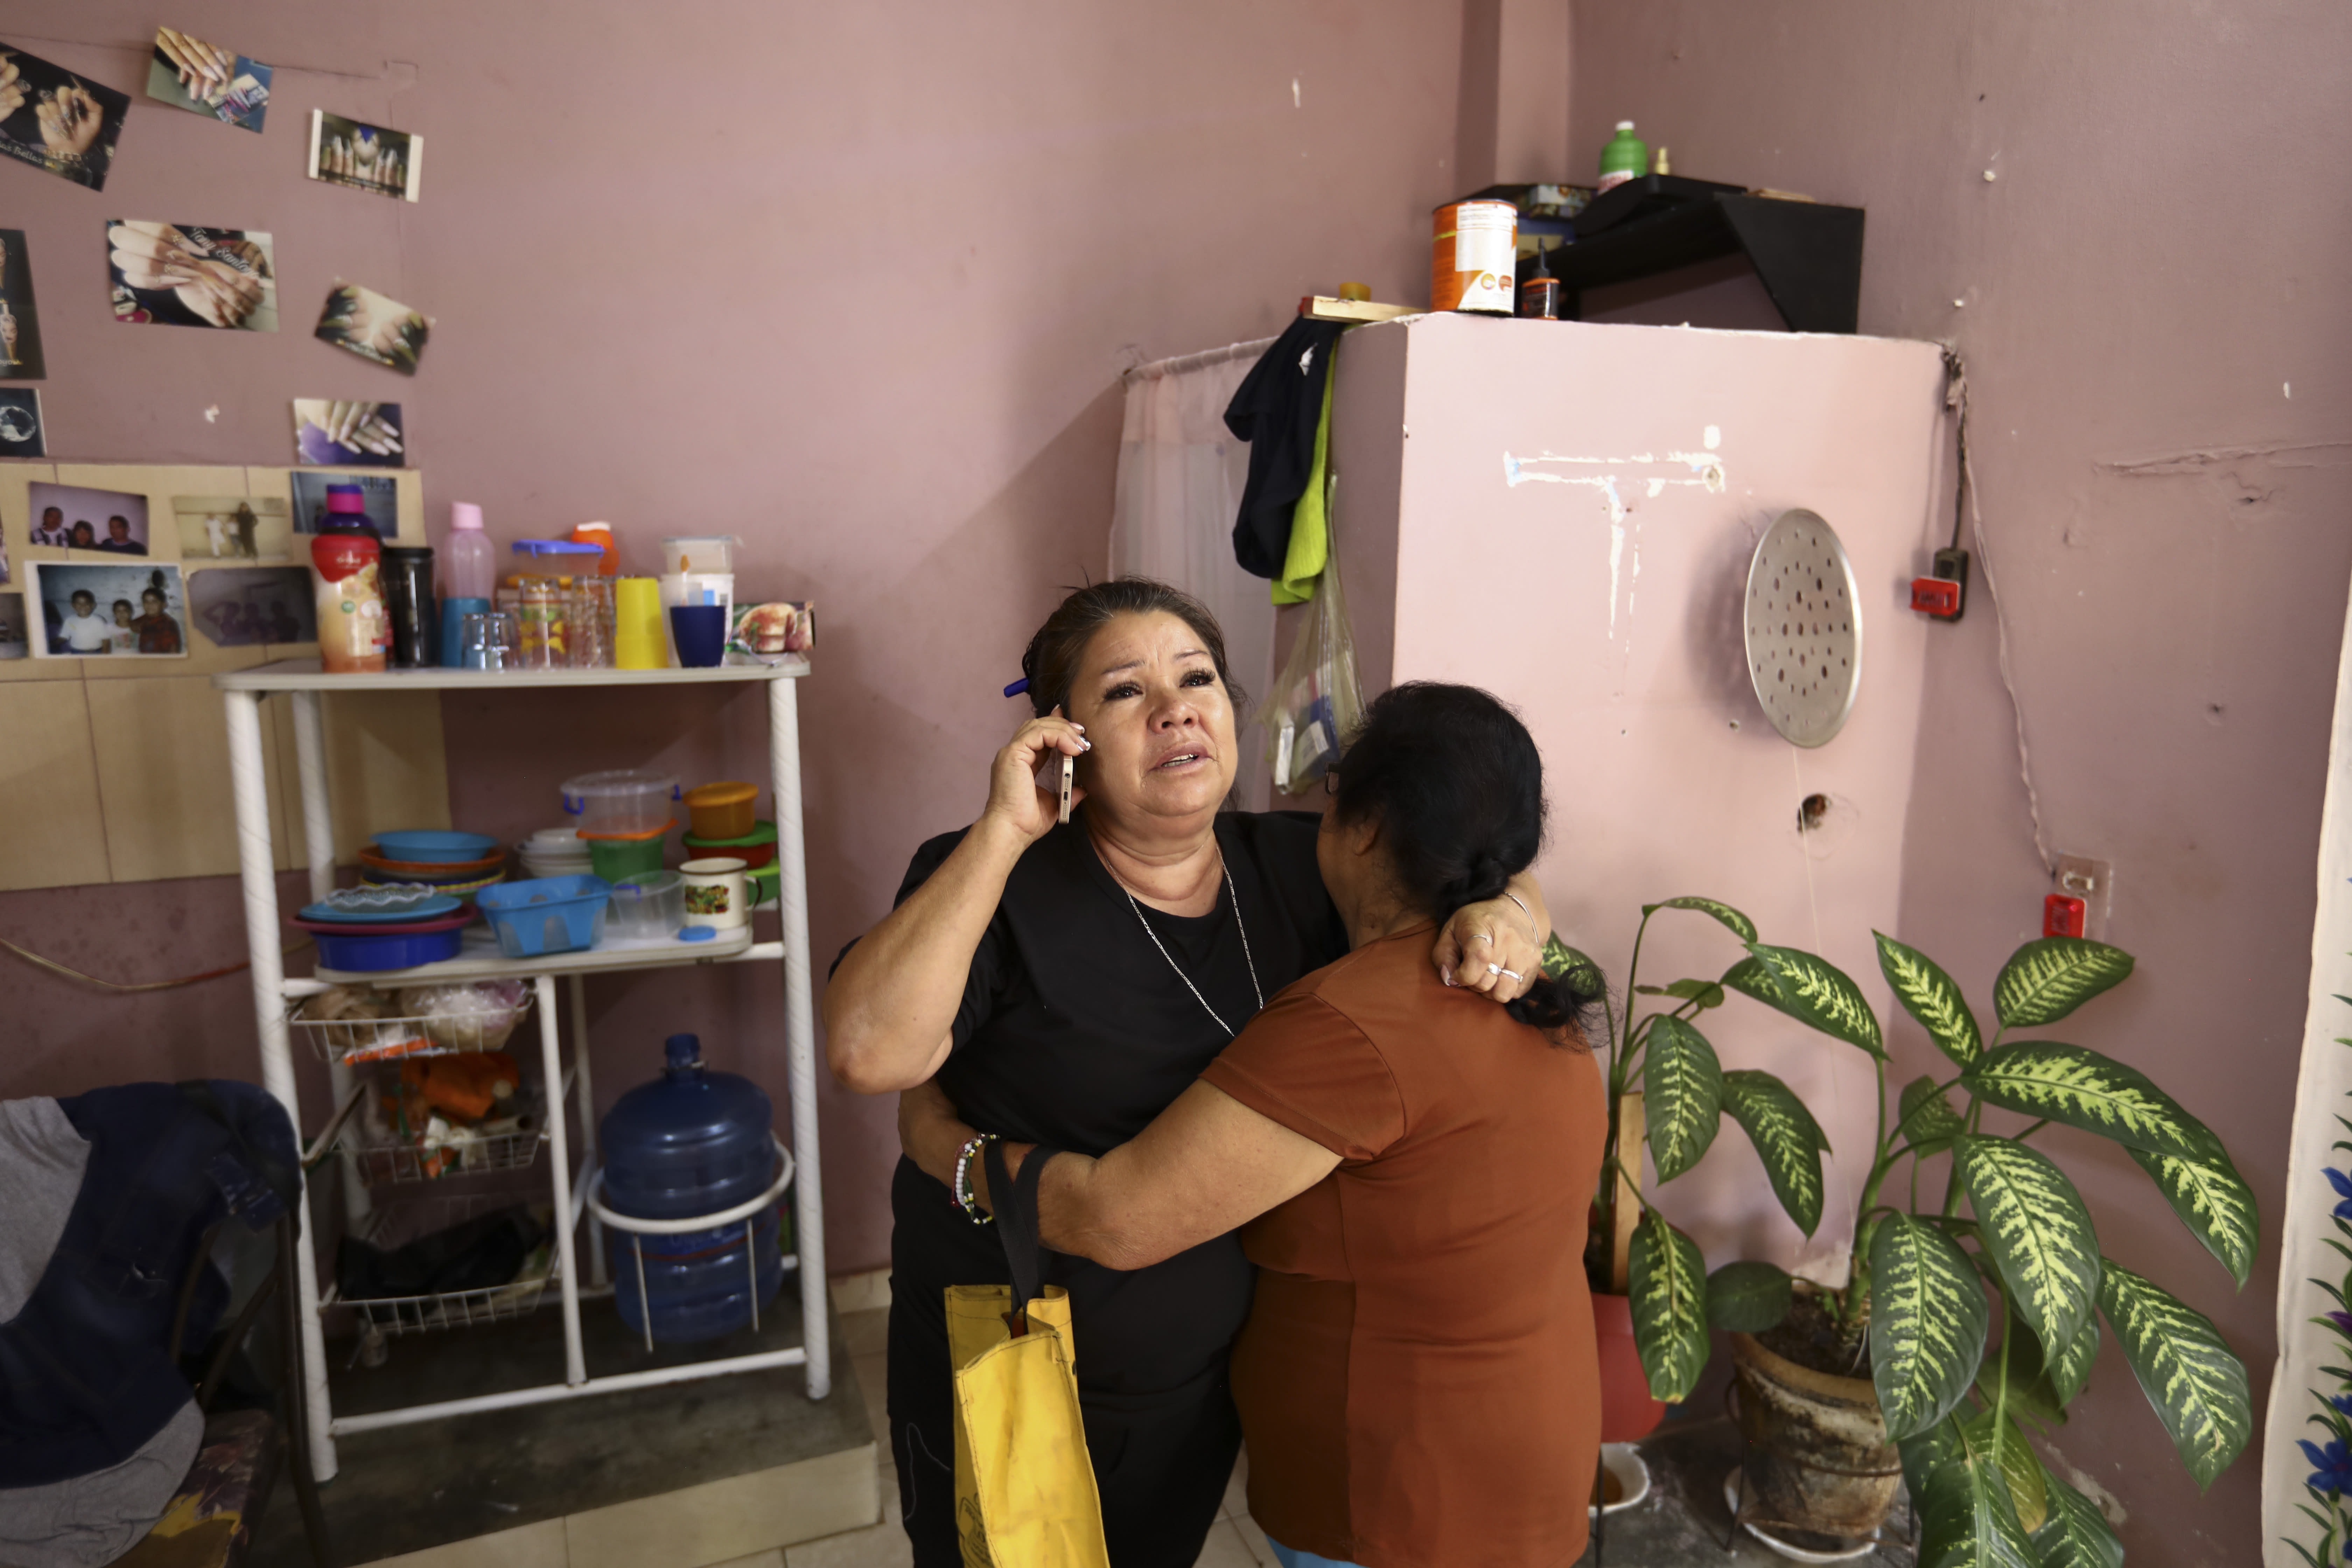 Rosa Alba Santoyo speaks on the phone and is embraced by a woman giving her condolences the day after she lost three of her adult children in an attack on the drug rehabilitation center where they were being treated, at her home in Irapuato, Mexico, Thursday, July 2, 2020. Gunmen burst into the drug rehabilitation center and opened fire Wednesday, killing 24 people and wounding seven, authorities said. After the loss of her three children, only two of Santoyo's seven children remain living. (AP Photo/Eduardo Verdugo)